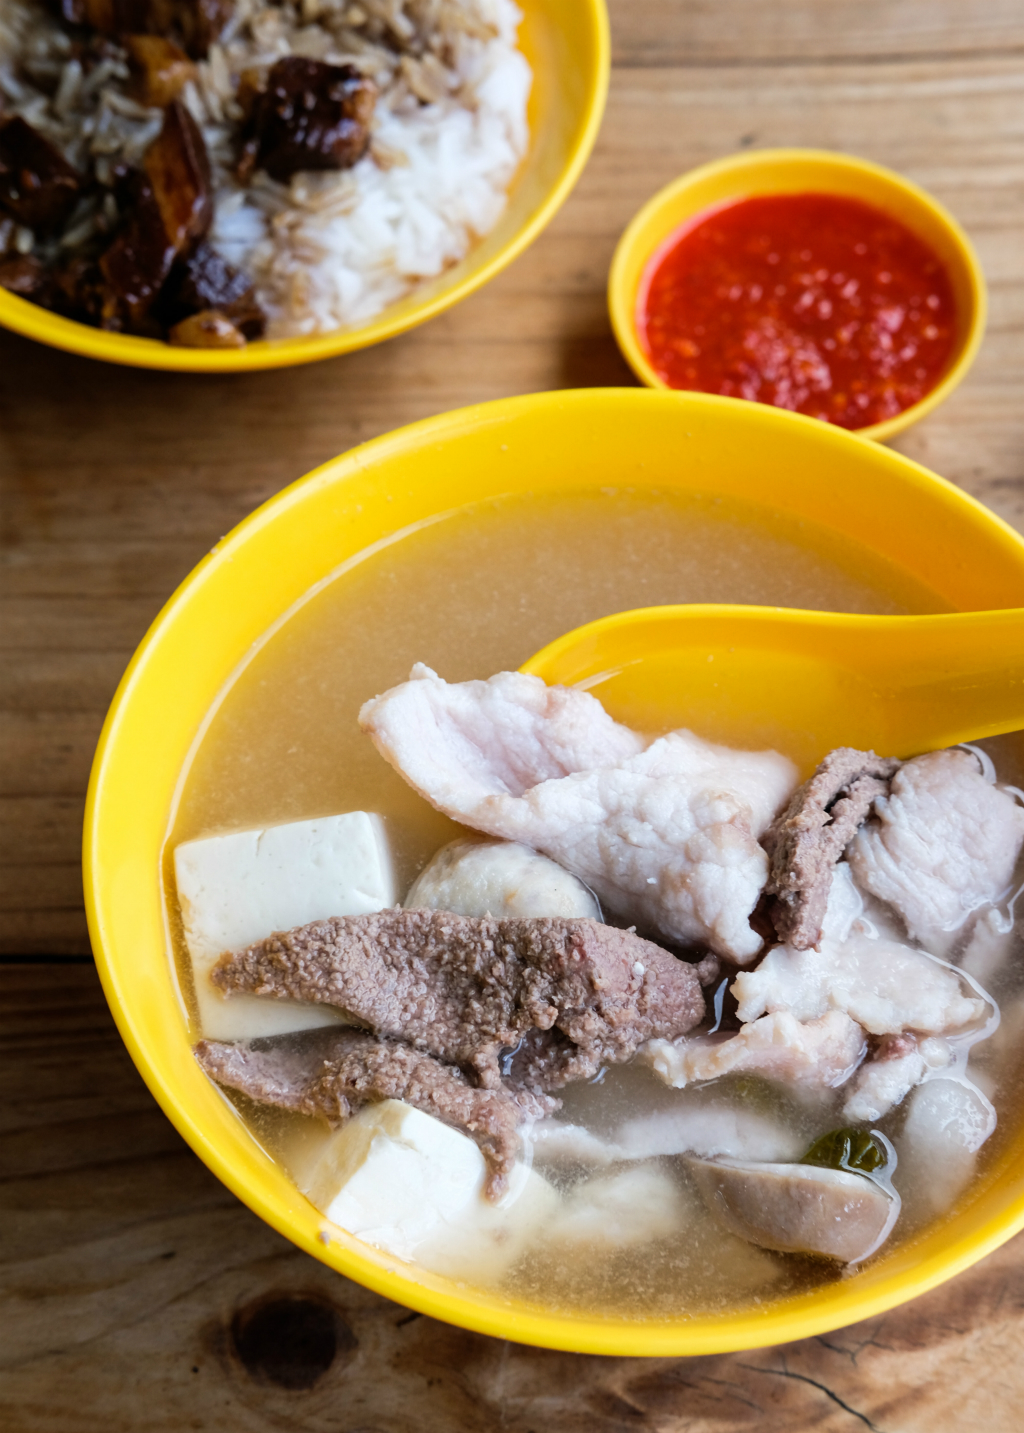 Guide to Jalan Besar & Lavender: Authentic Mun Chee Kee King of Pig's Organ Soup